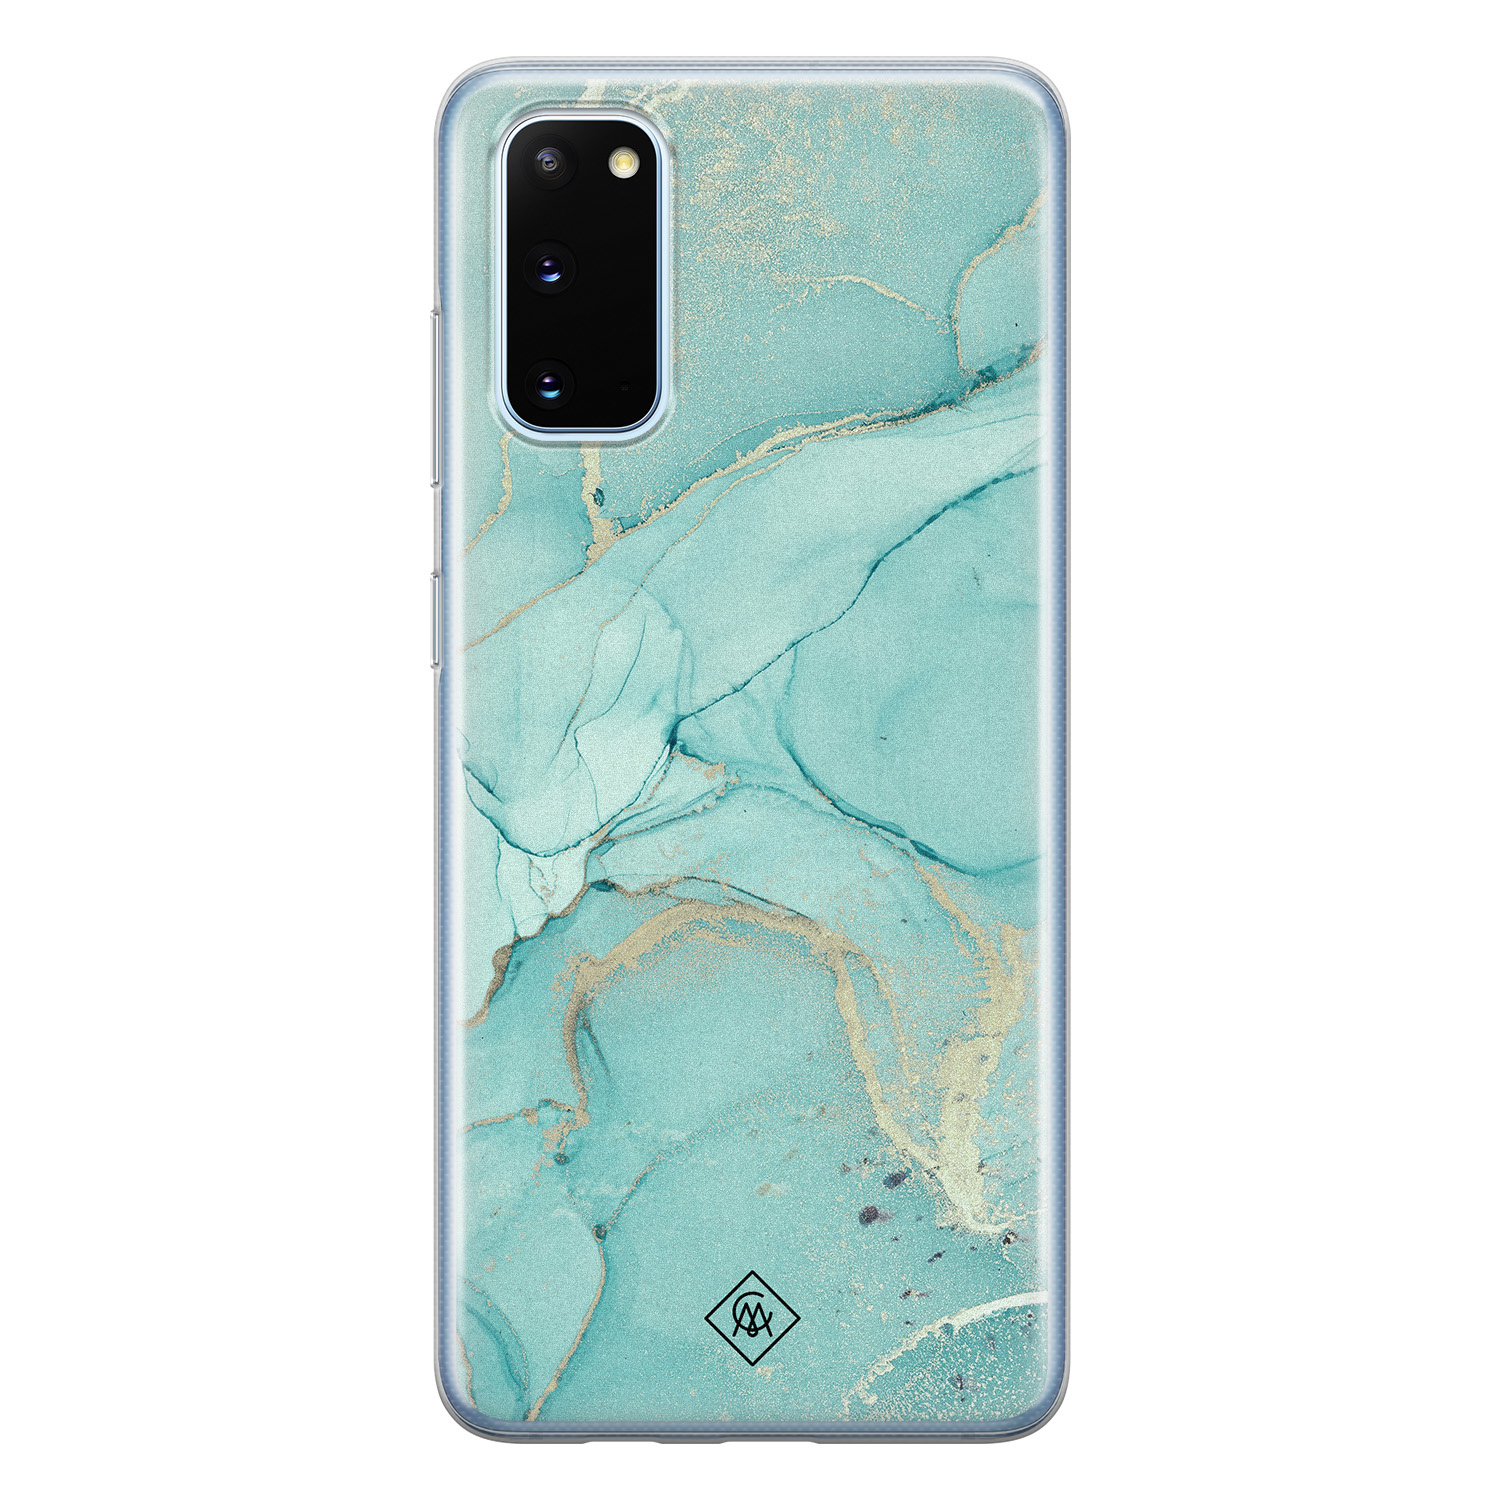 Casimoda Samsung Galaxy S20 siliconen hoesje - Touch of mint